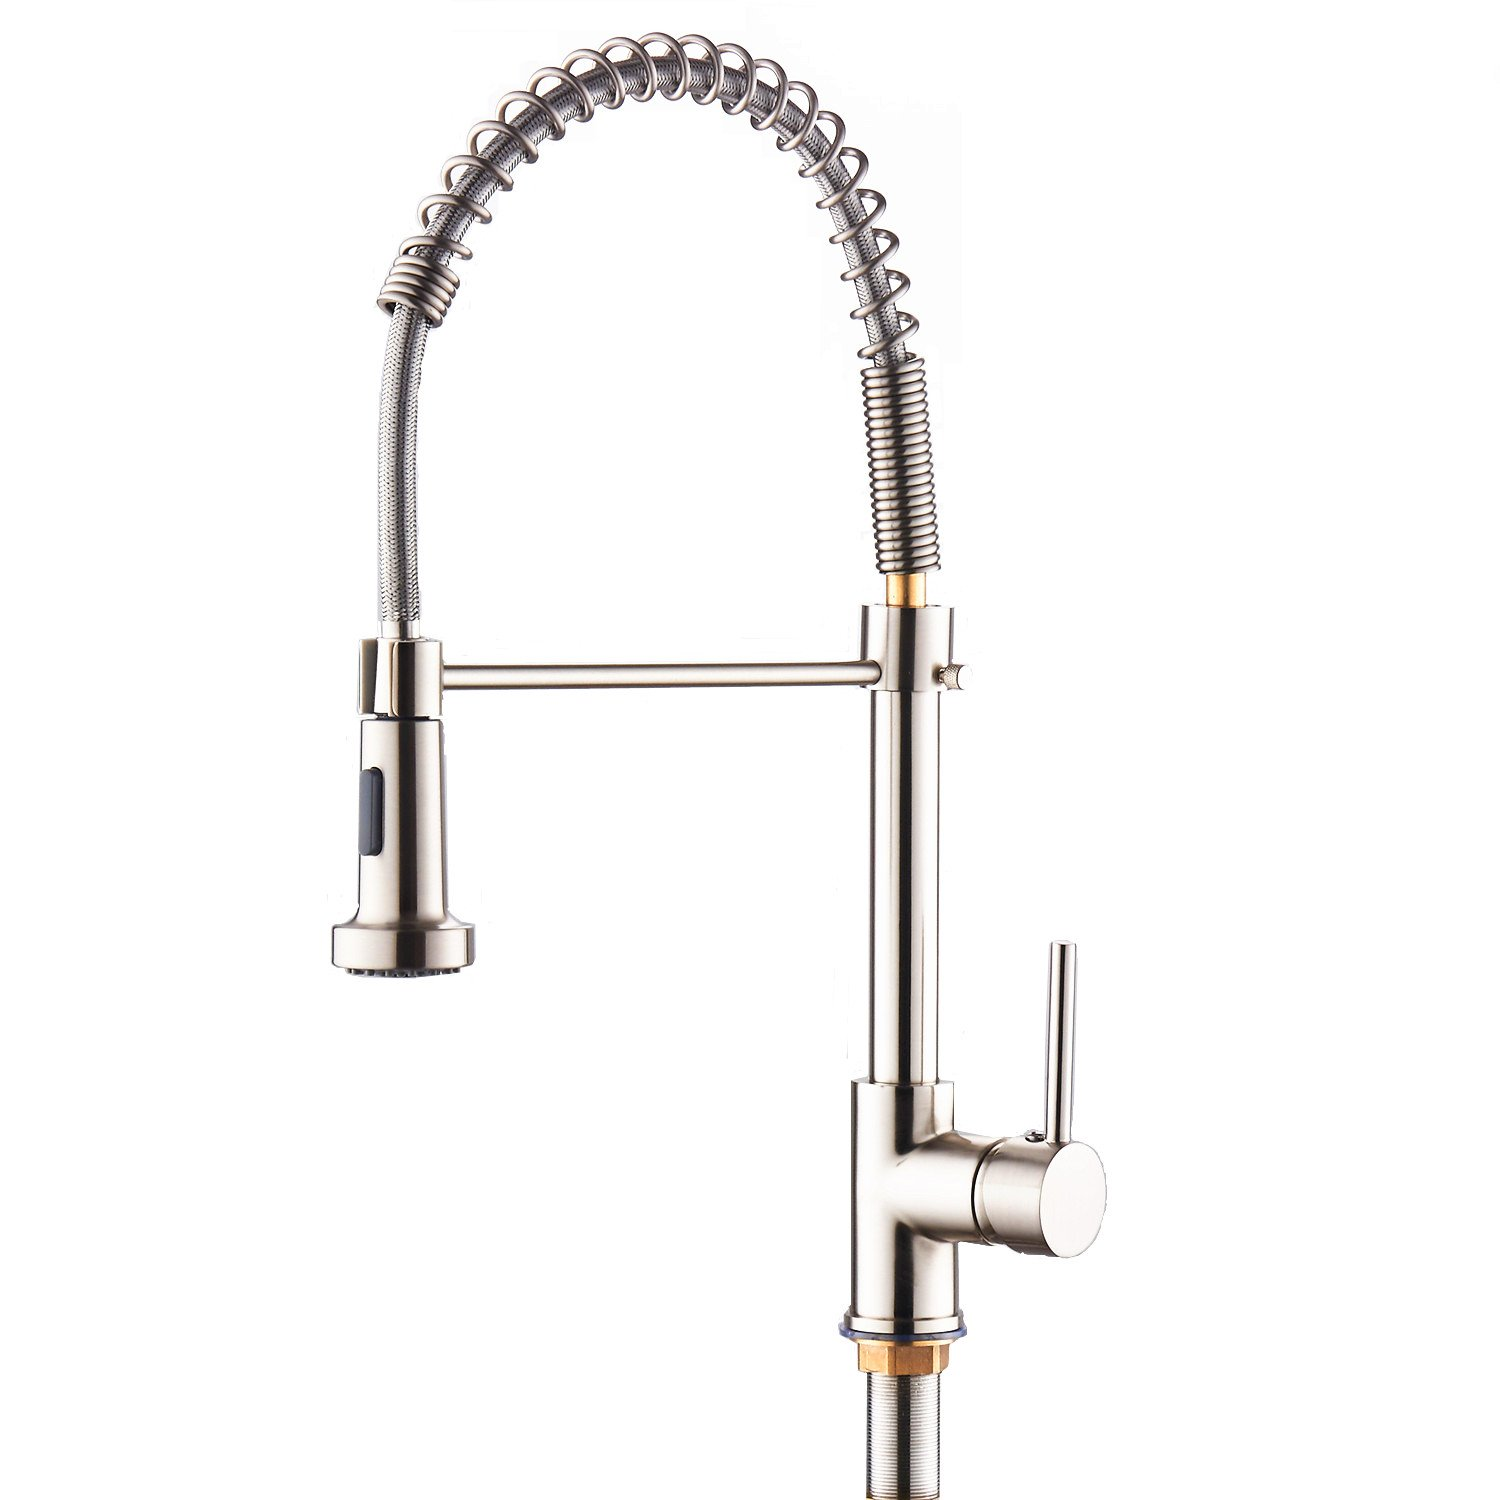 SOQO Modern Commercial One-Handle Pre-Rinse Pull Down Adjustable Kitchen Faucet Dual Function with Shower Sprayer(Brushed Nickel)